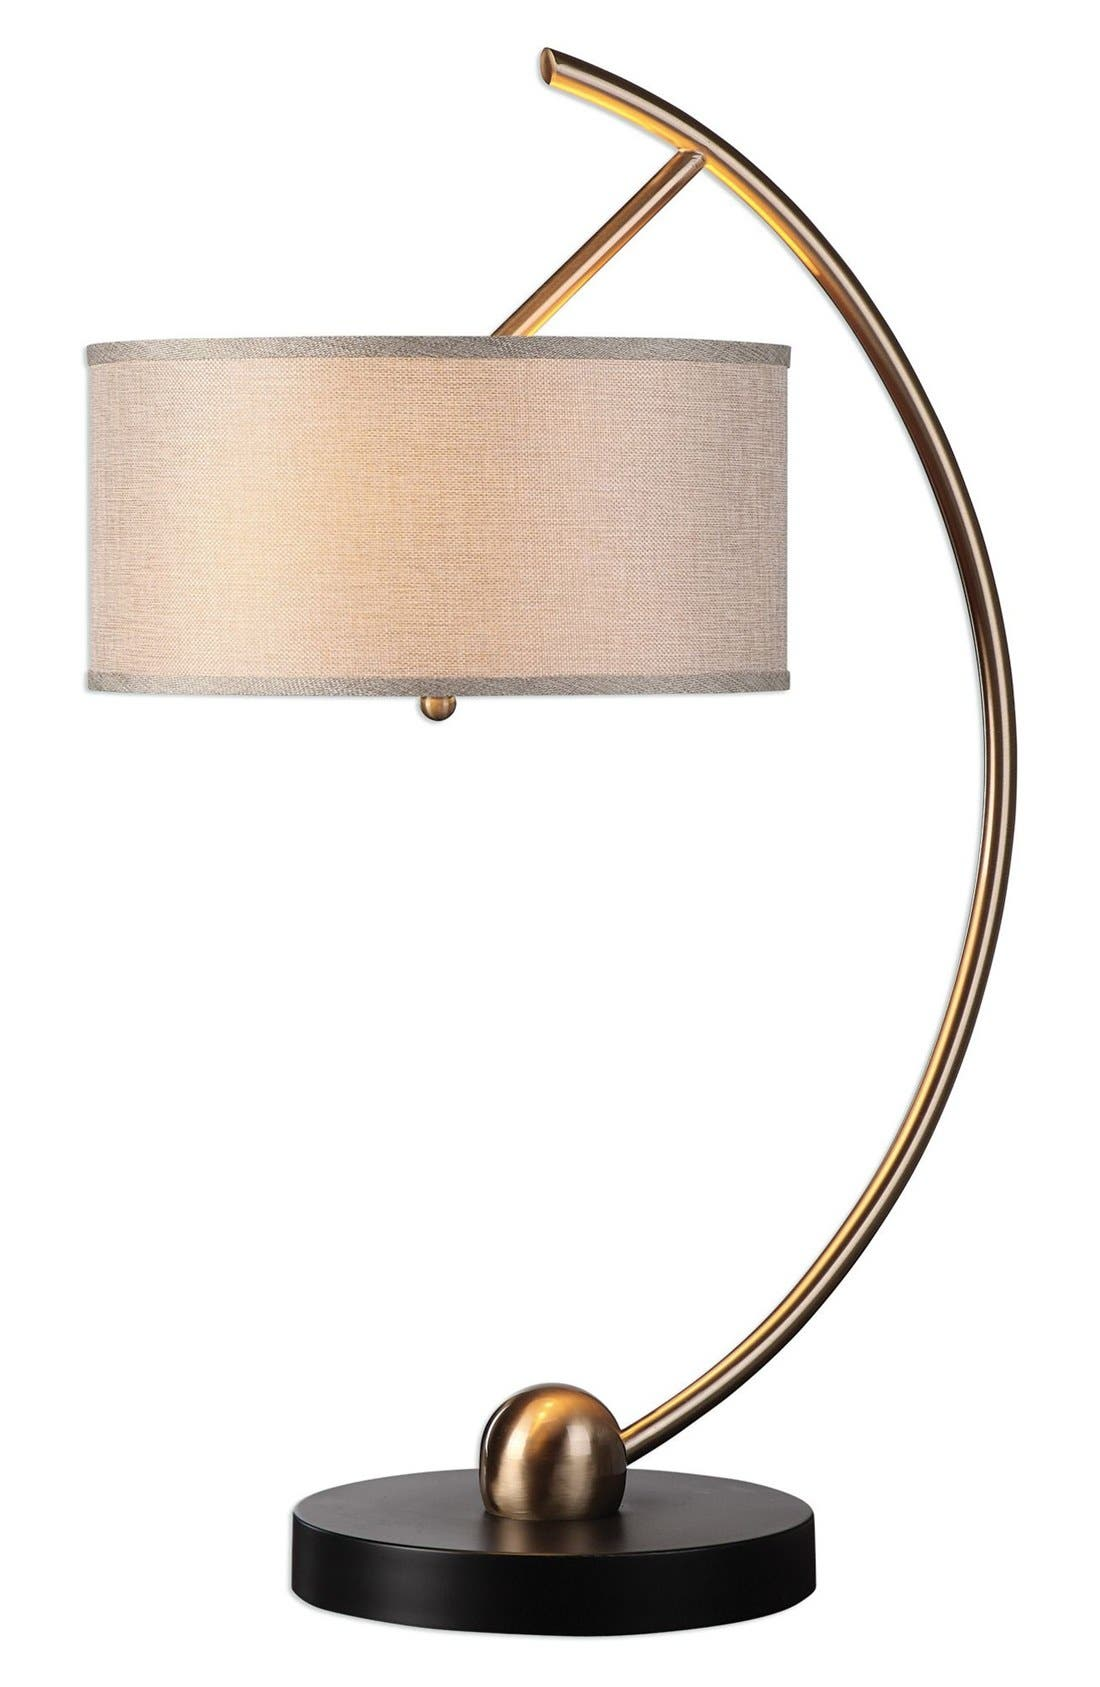 Curved Brass Table Lamp,                             Main thumbnail 1, color,                             710